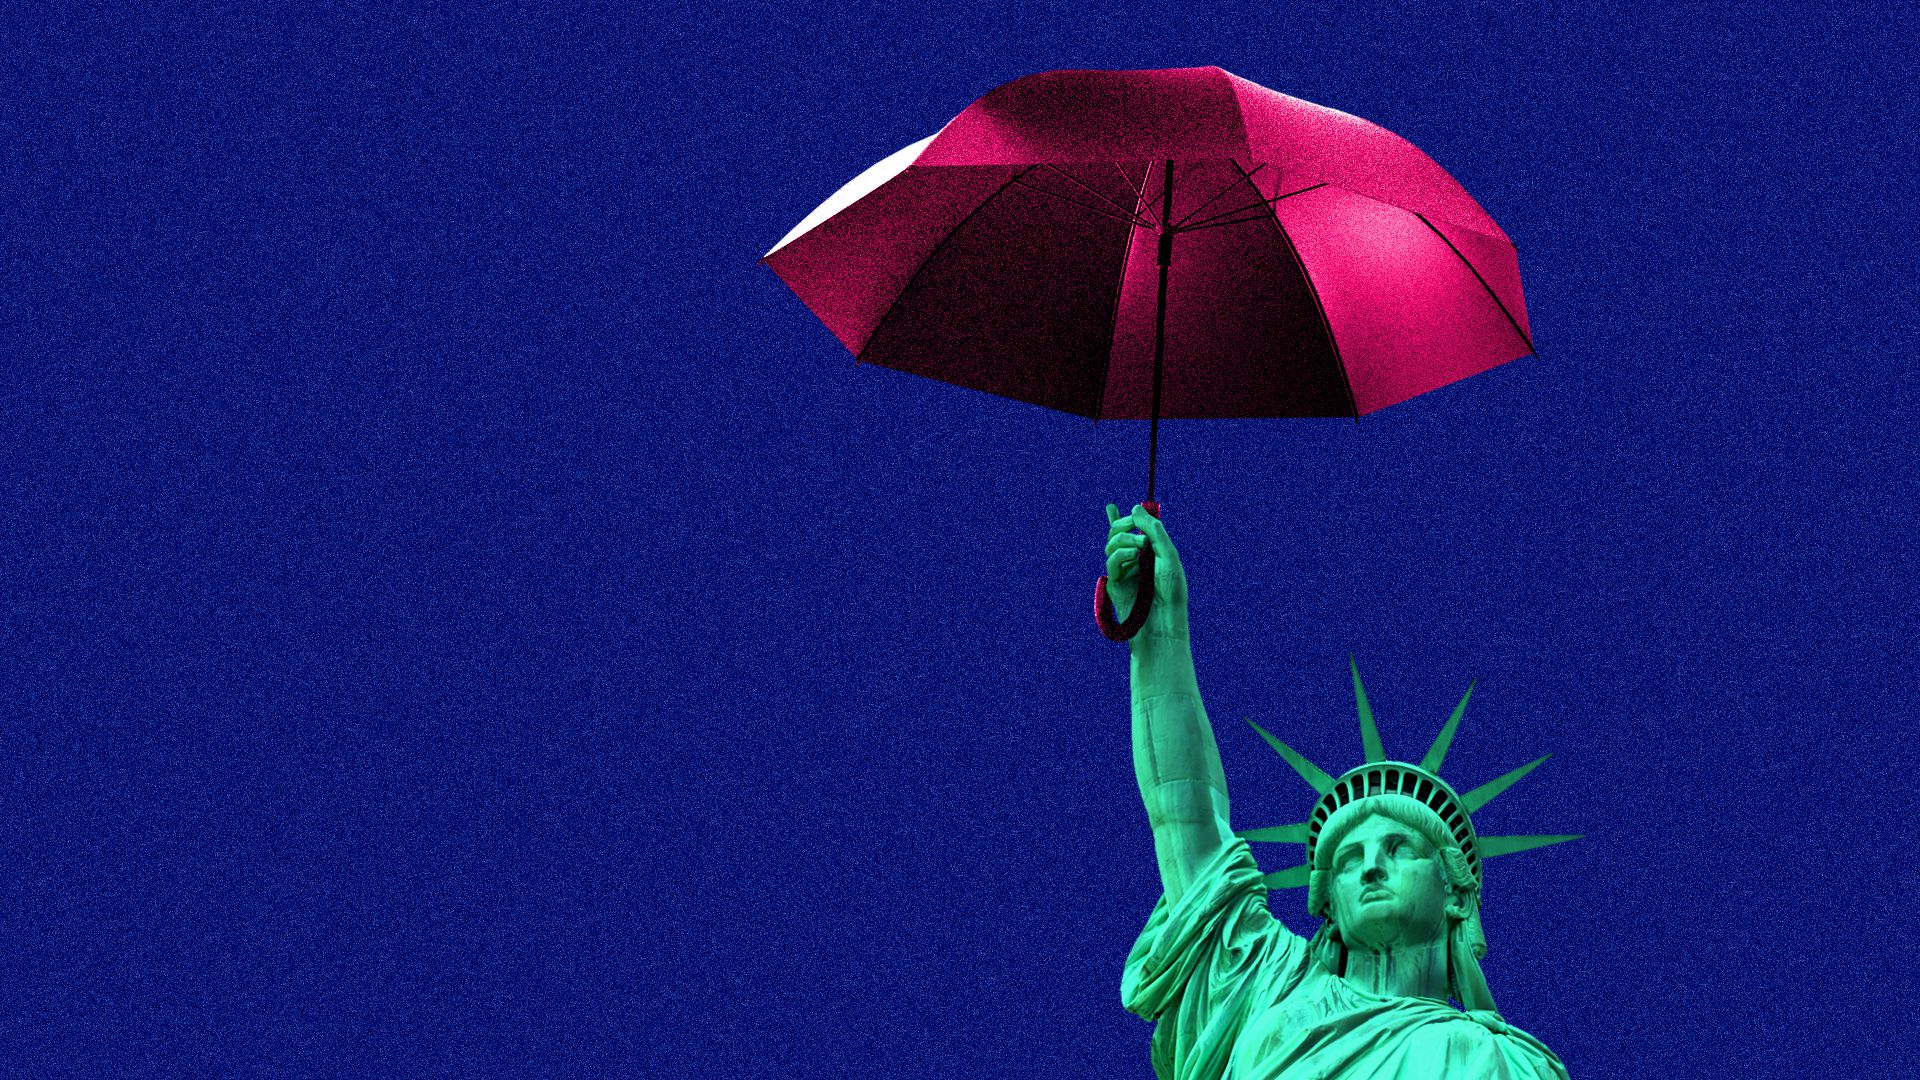 Illustration of the Statue of Liberty holding up a red umbrella against a blue background